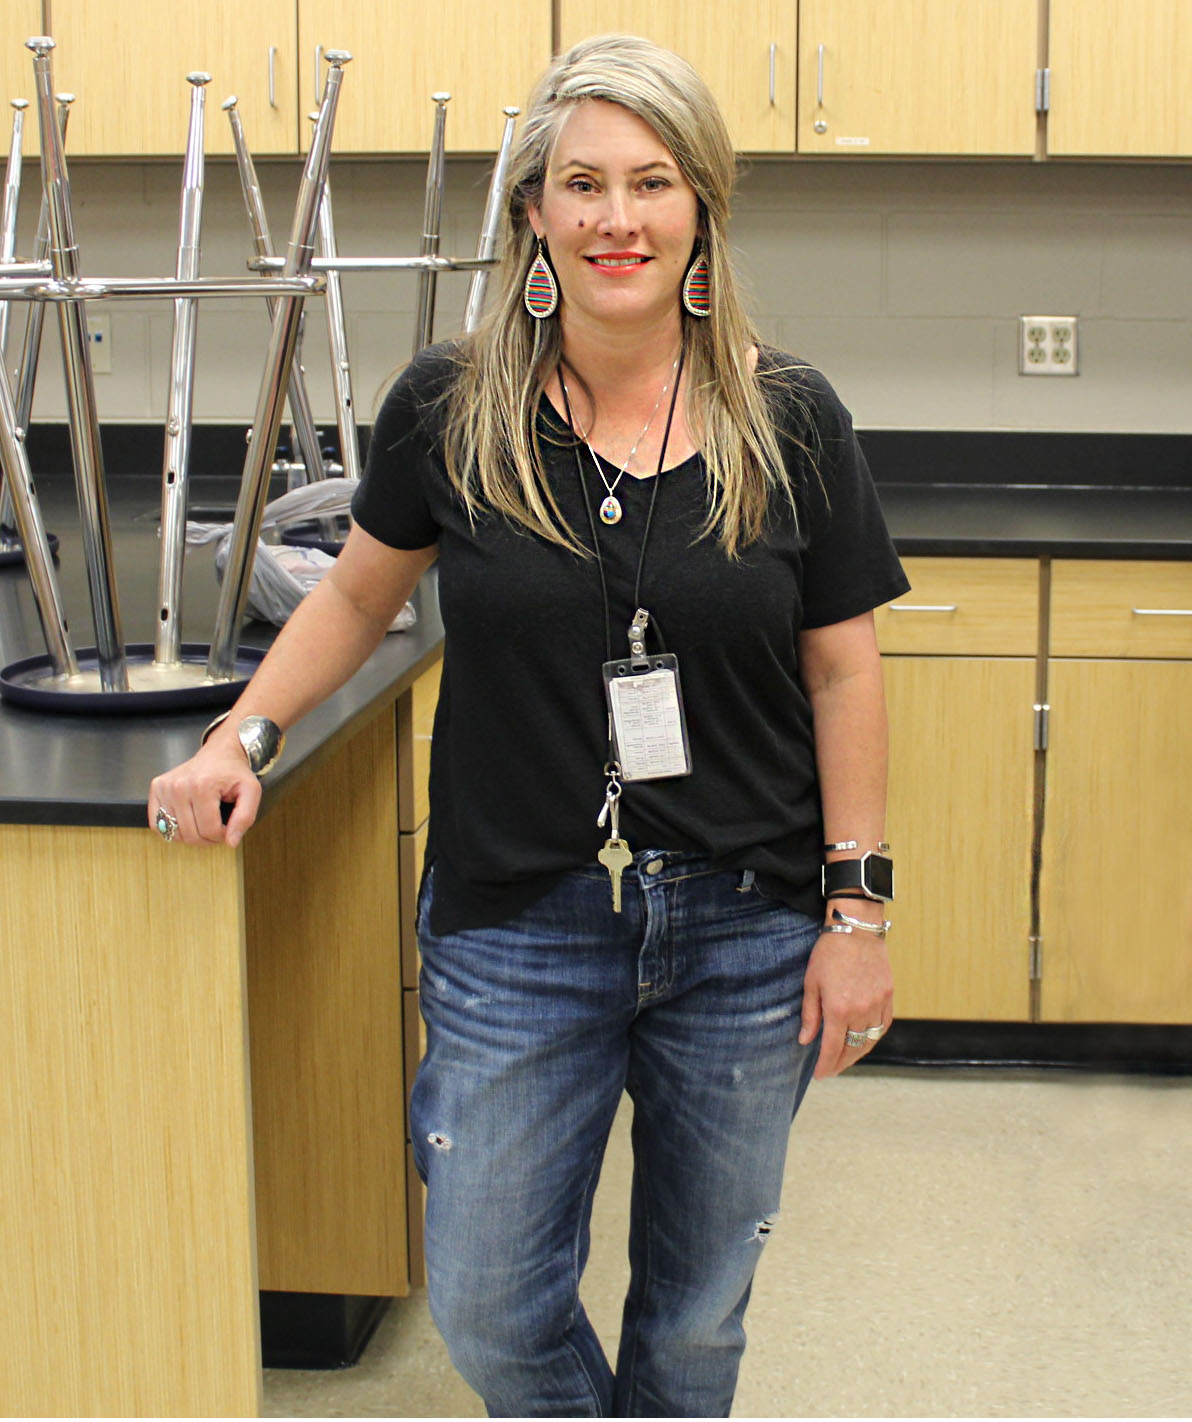 Biology teacher Kalin Wells is one of the winners of the Teacher of the Year Award.